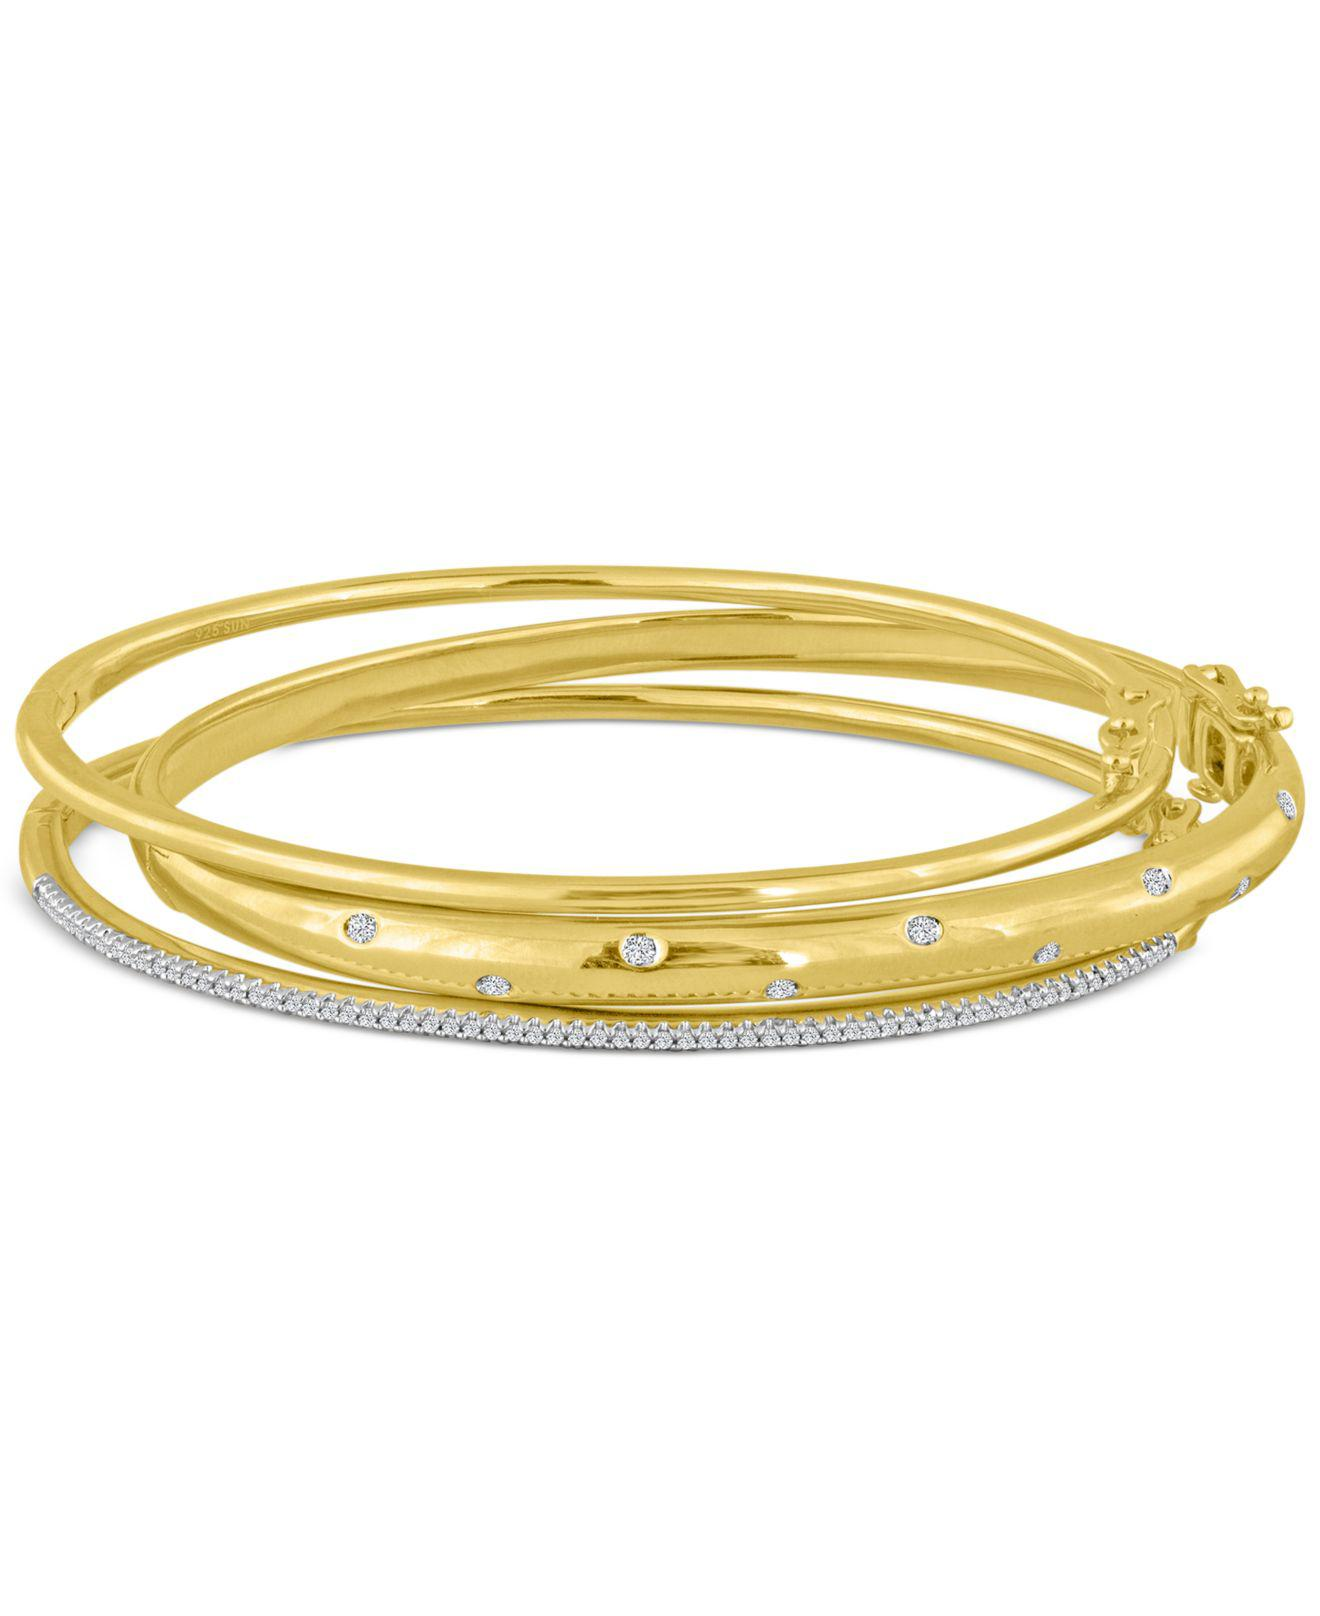 on macys set bracelets shop sodi created savings for macy textured pc bangle new tone bangles s and crystal thalia gold